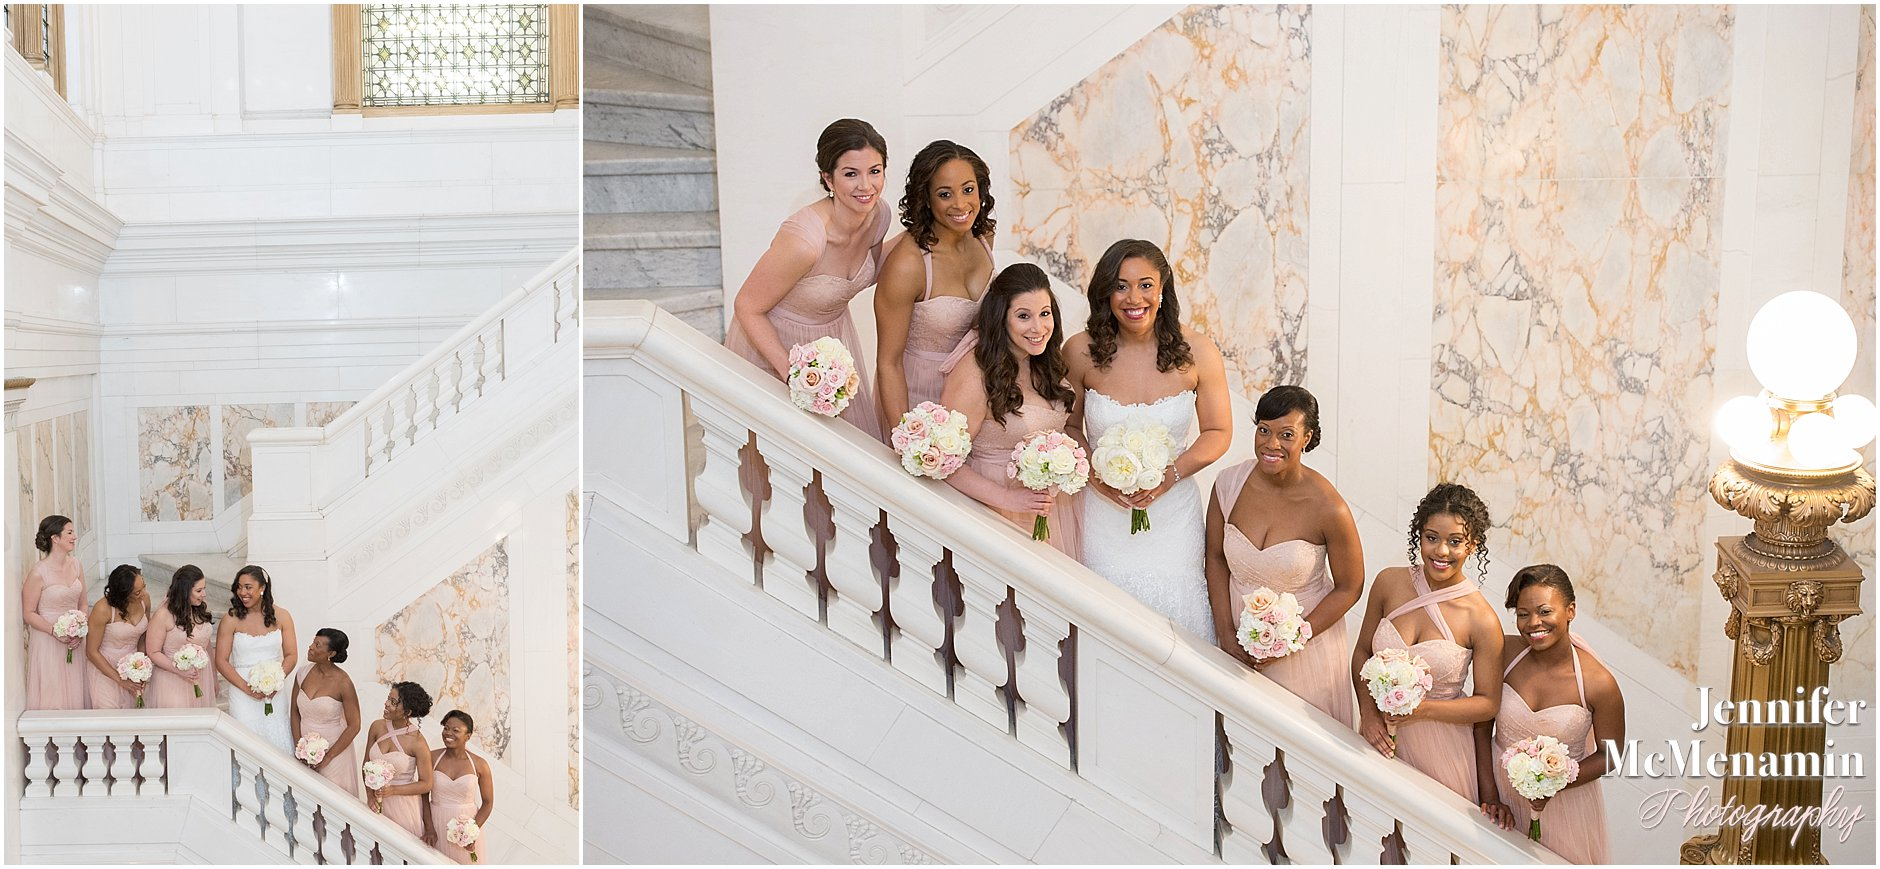 016-Peabody-Library-Wedding_WilsonPatterson_00646-0129_Jennifer-McMenamin-Photography